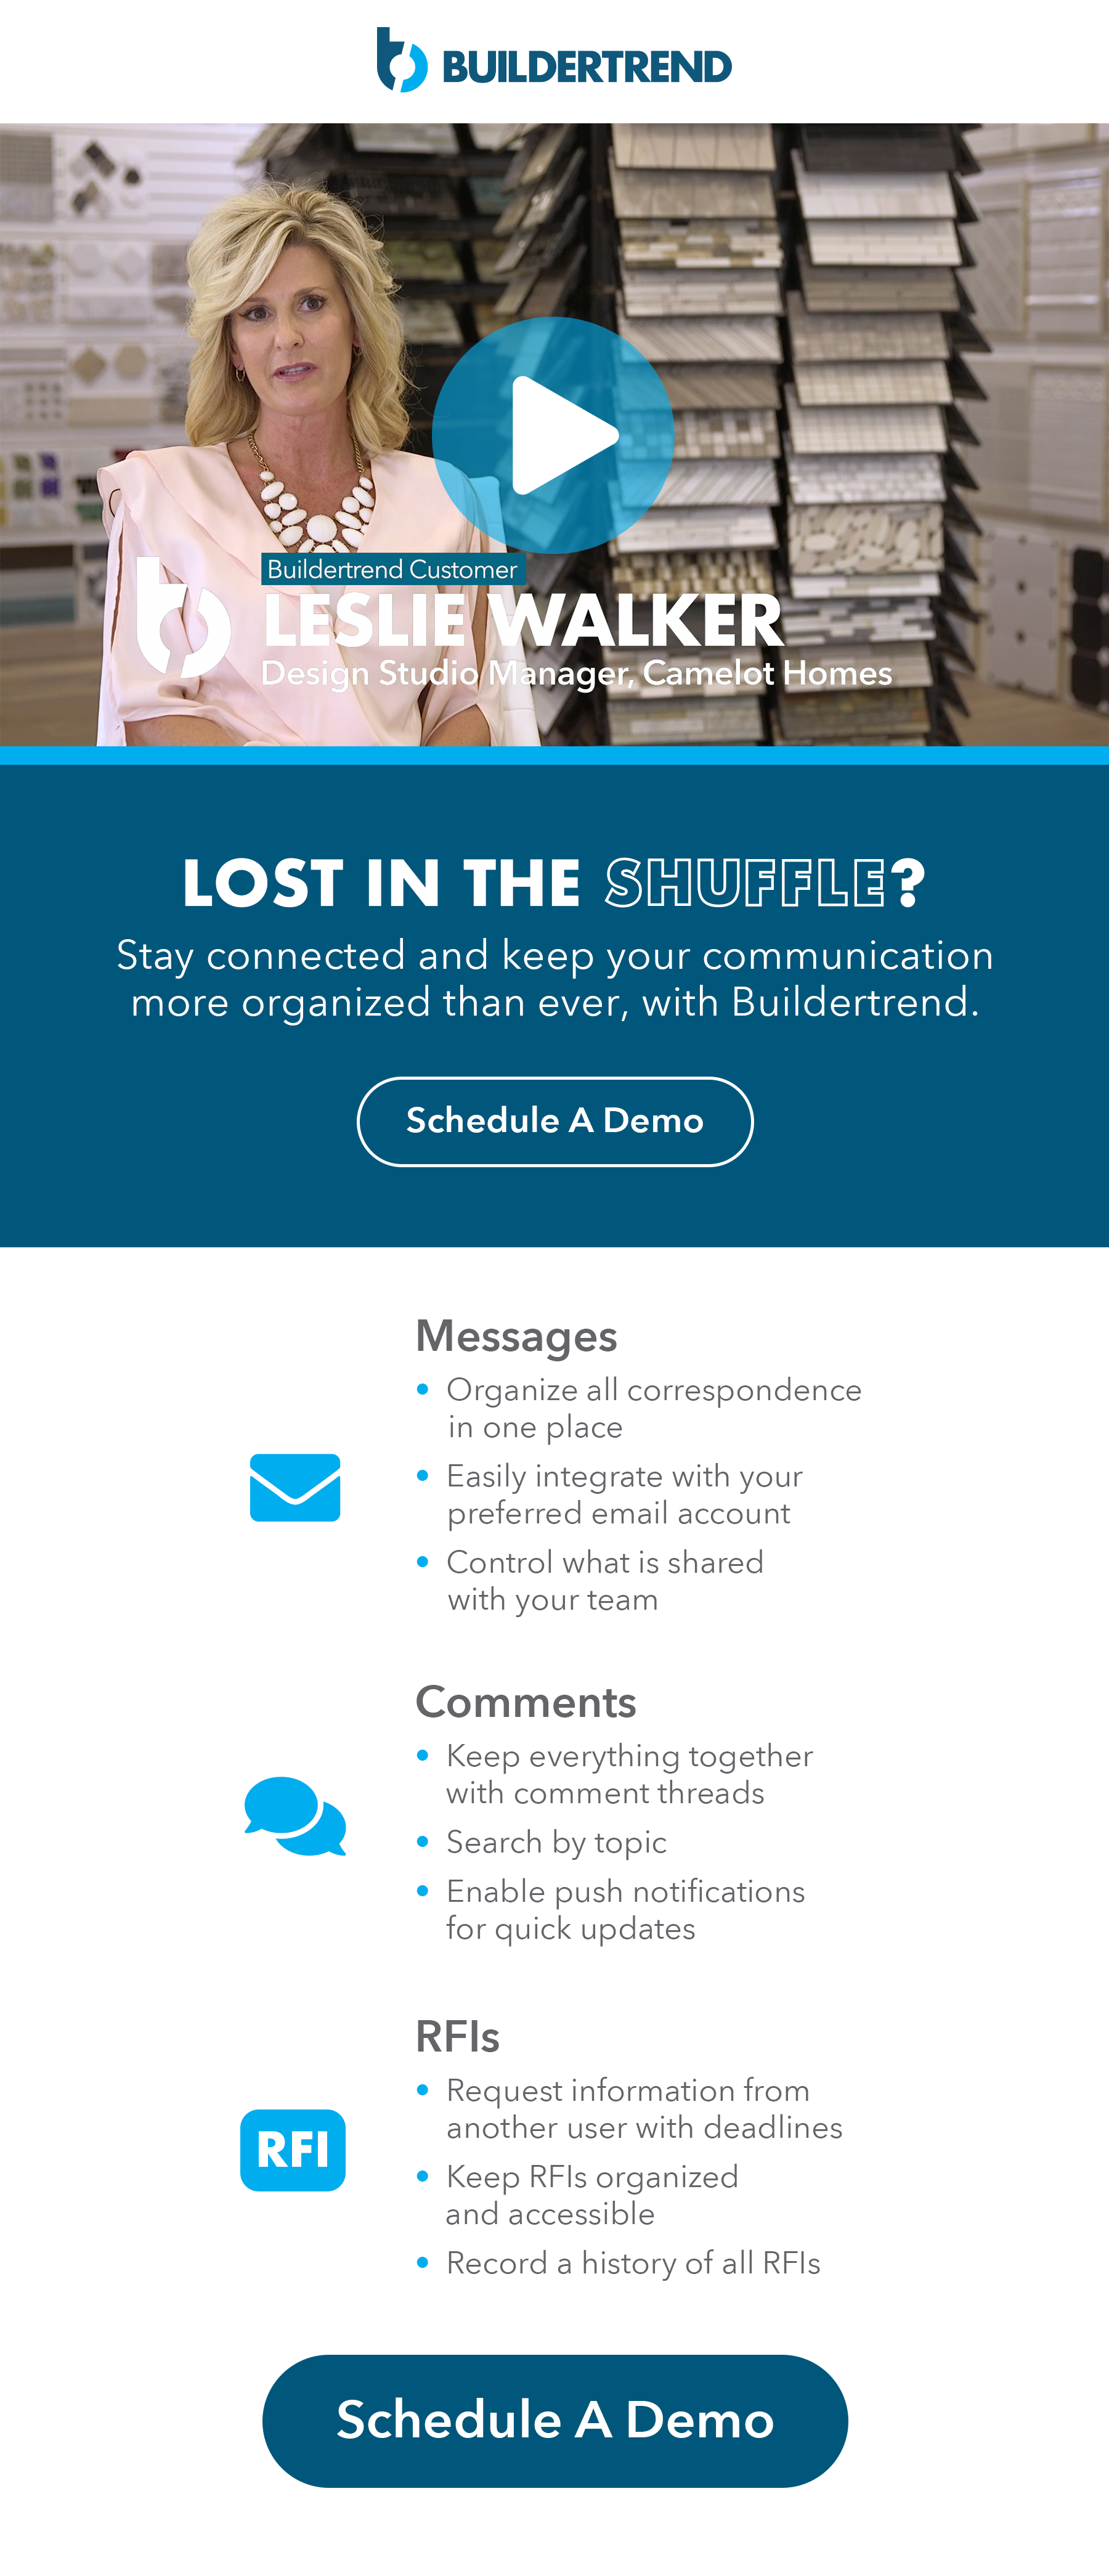 lost in the shuffle - stay connected and keep your communication more organized than ever, with buildertrend - schedule your demo today